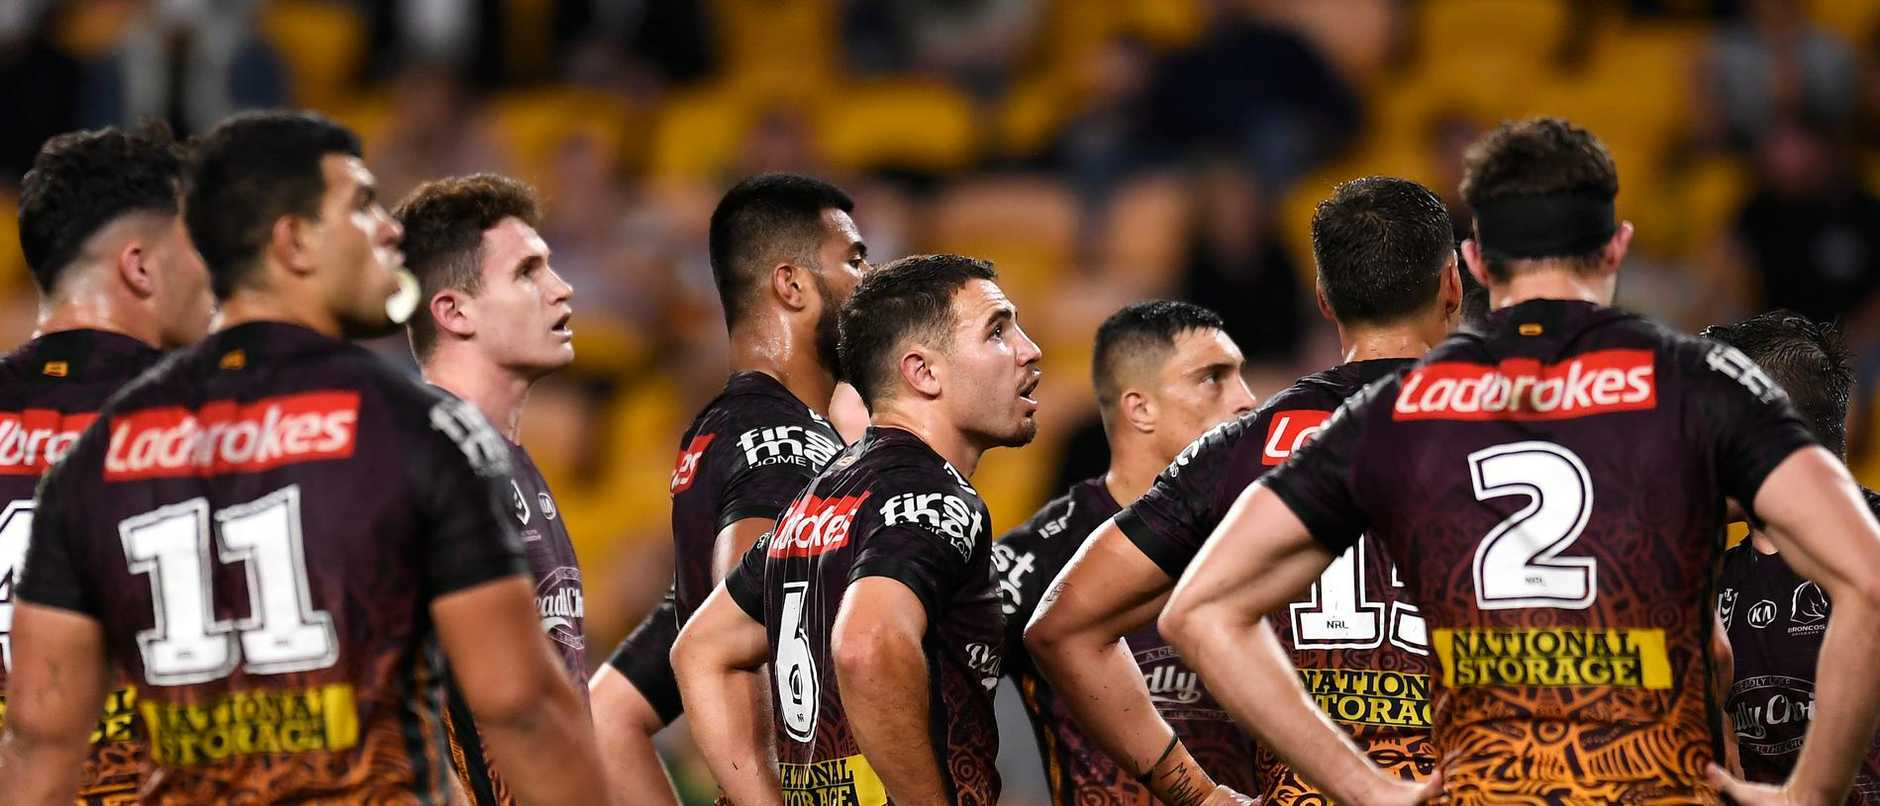 New Brisbane Broncos coach Kevin Walters has promised to overhaul the club's wooden spoon squad - and the cleanout starts Friday.